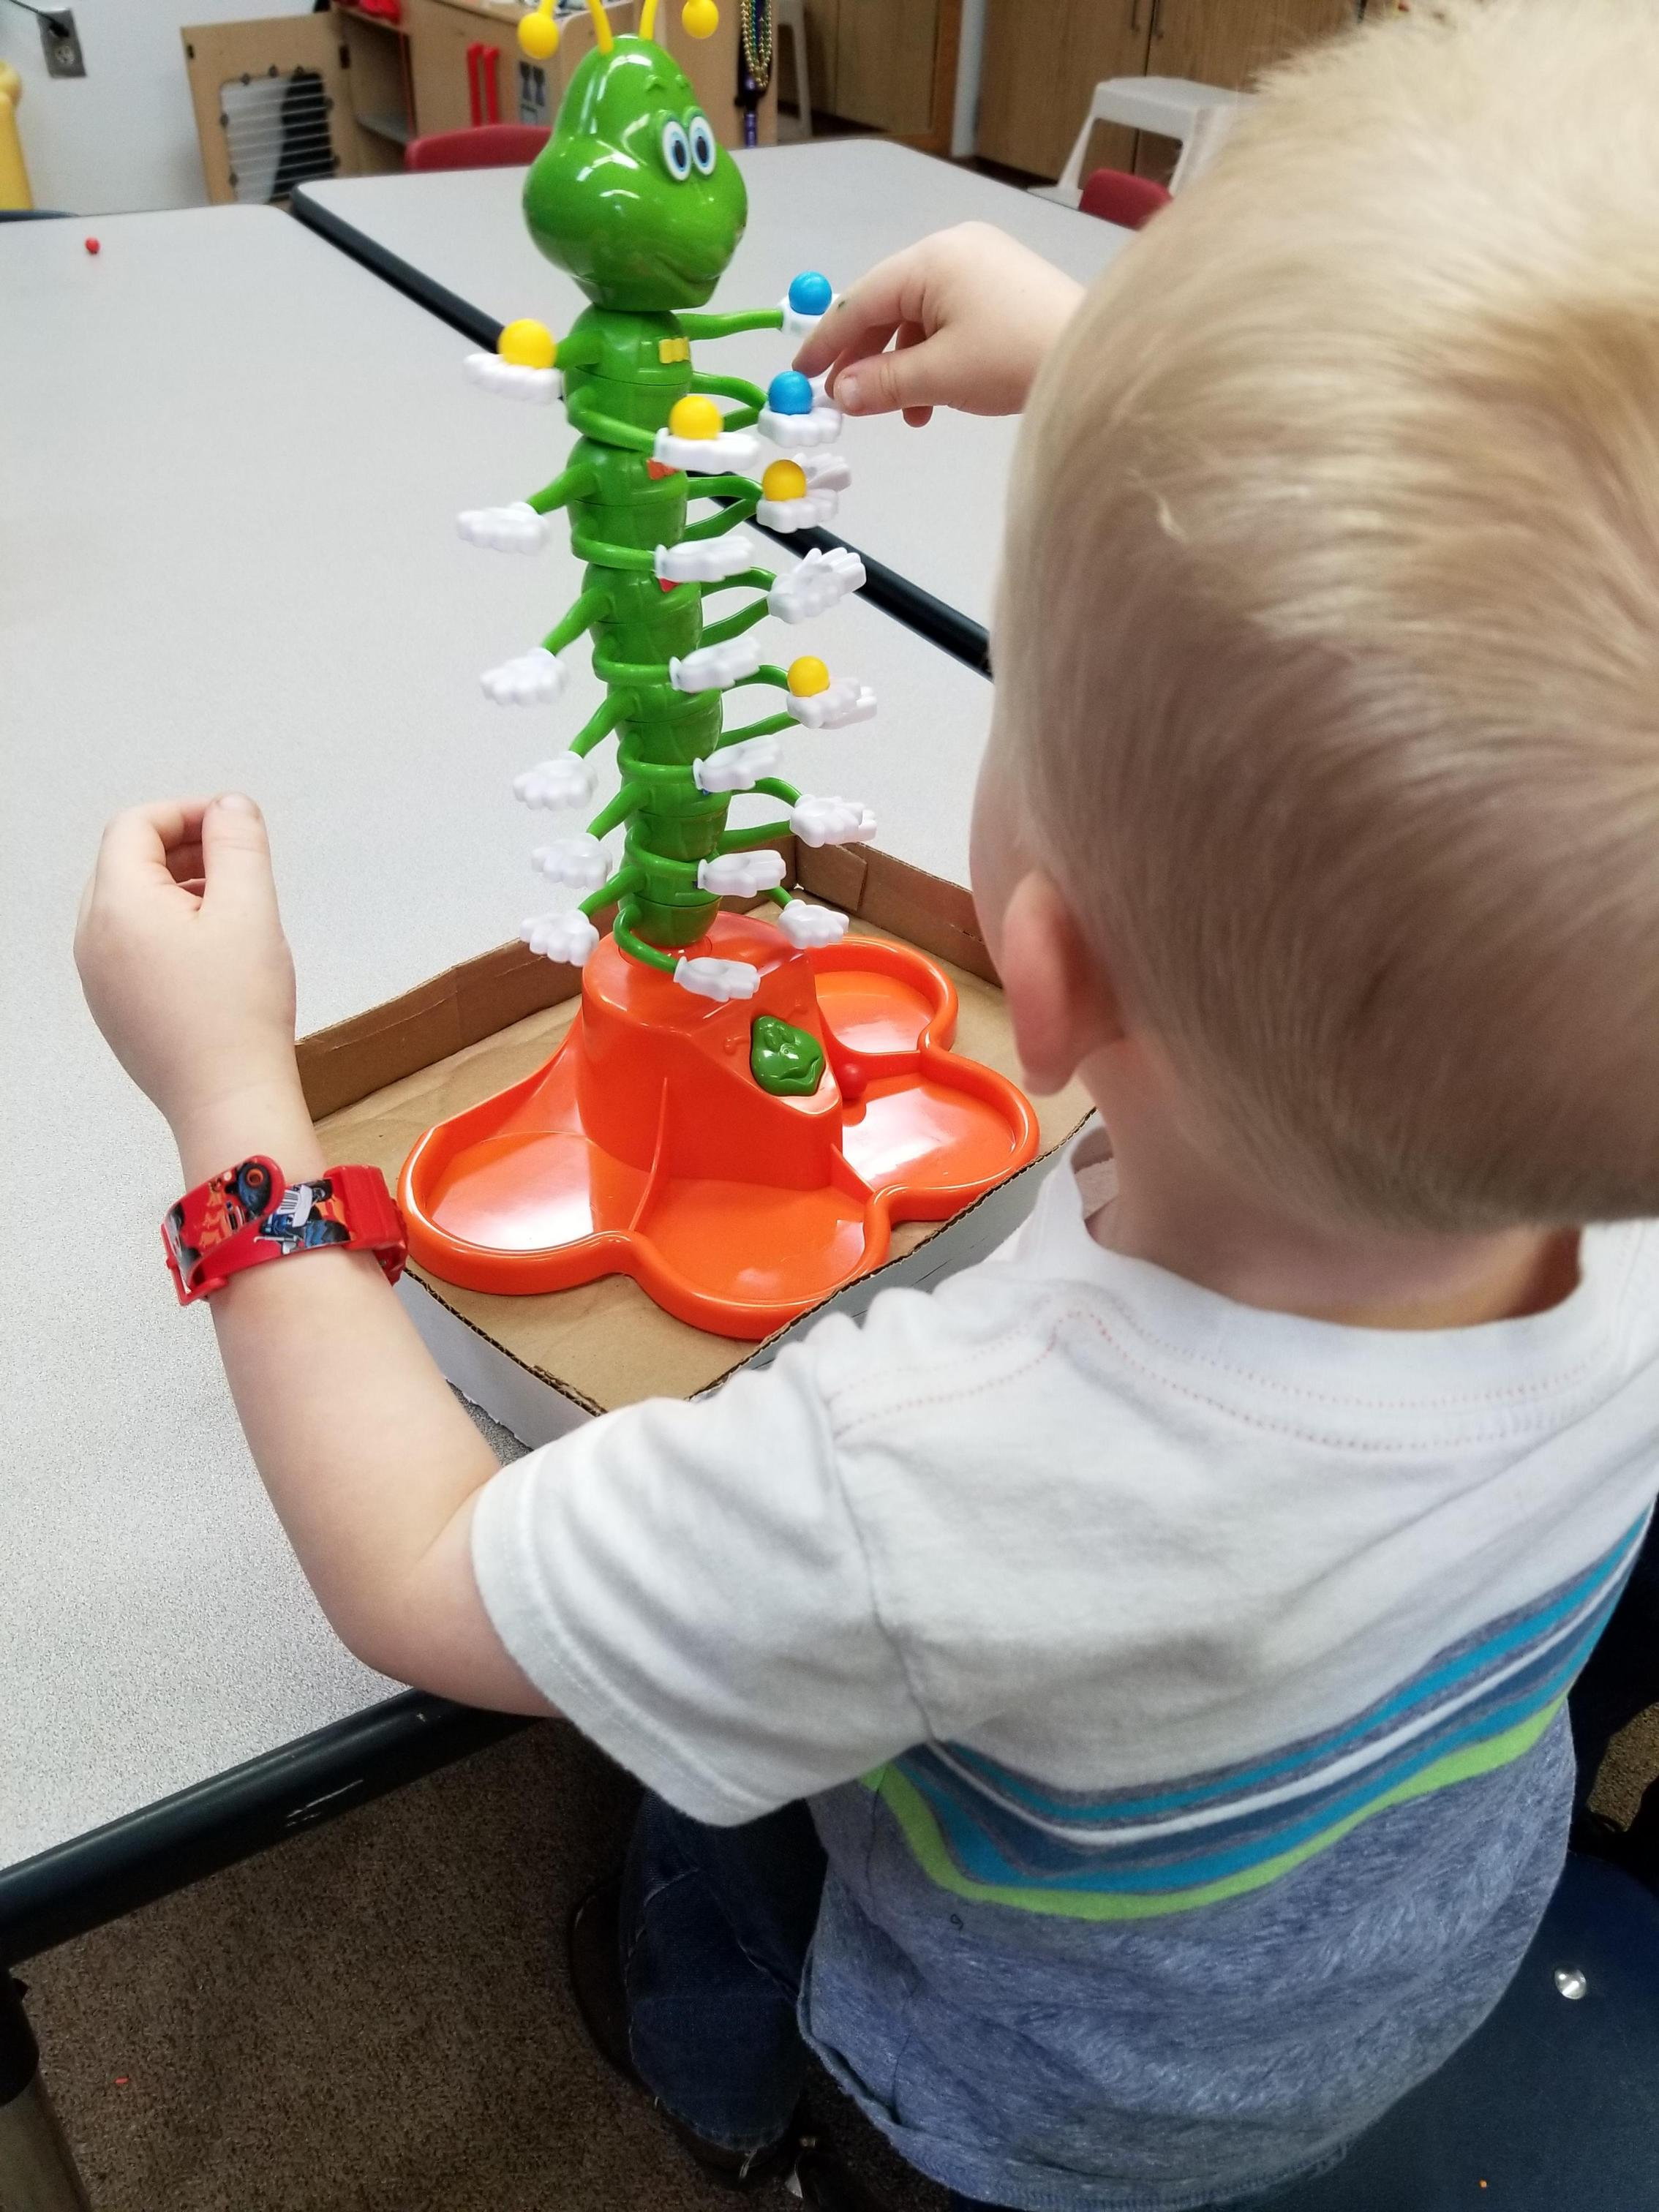 Balancing Caterpillar Game